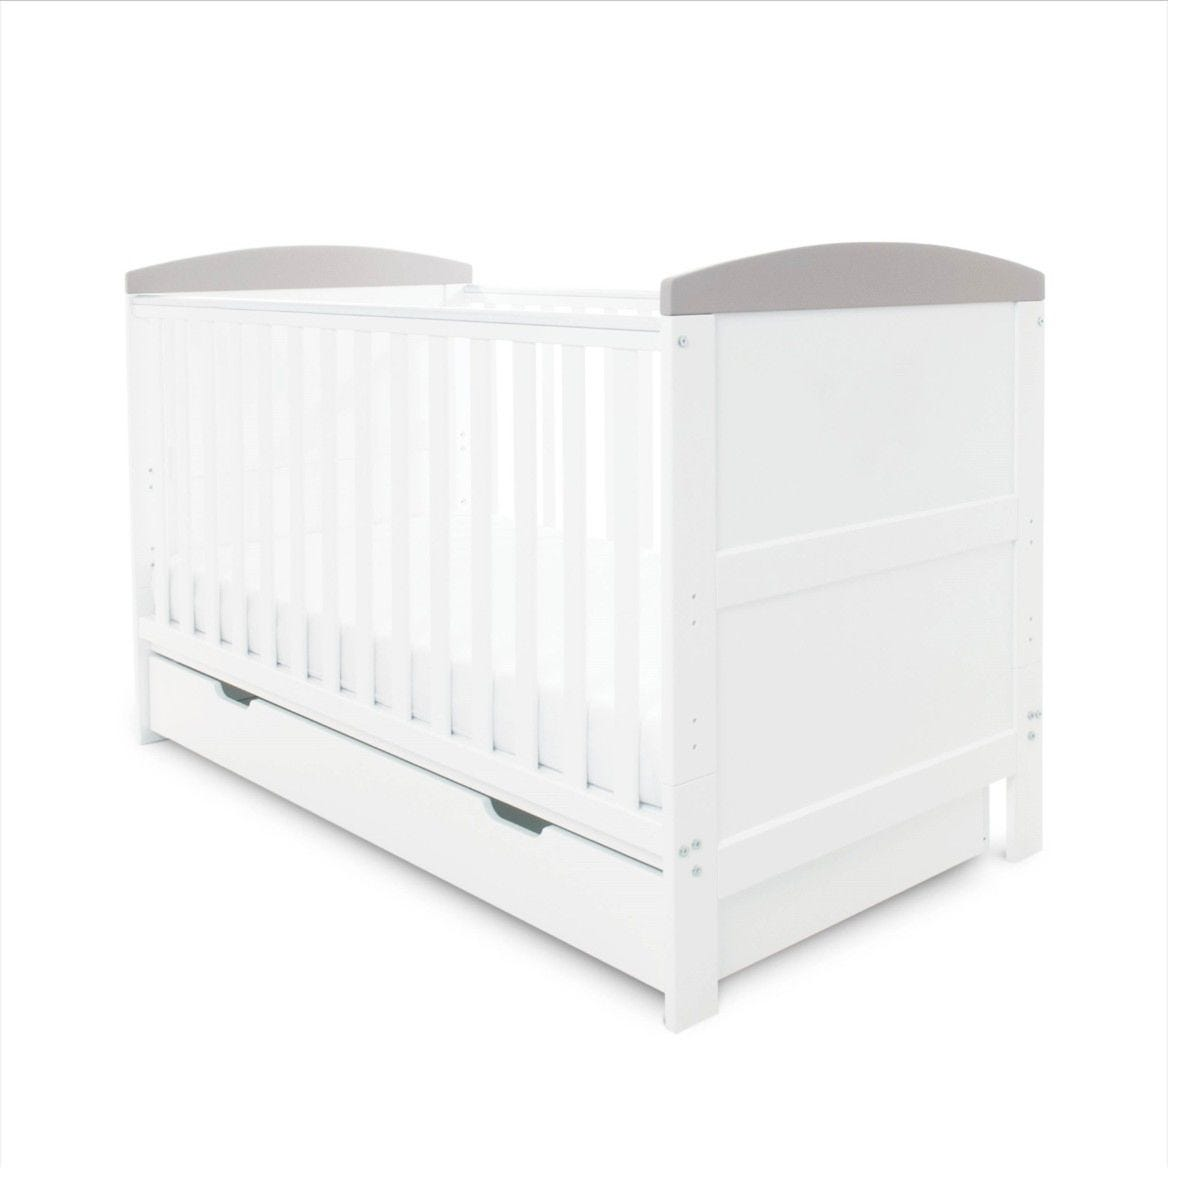 Ickle Bubba Coleby Classic Cot Bed Under Drawer and Pocket Sprung Mattress White With Grey Trim